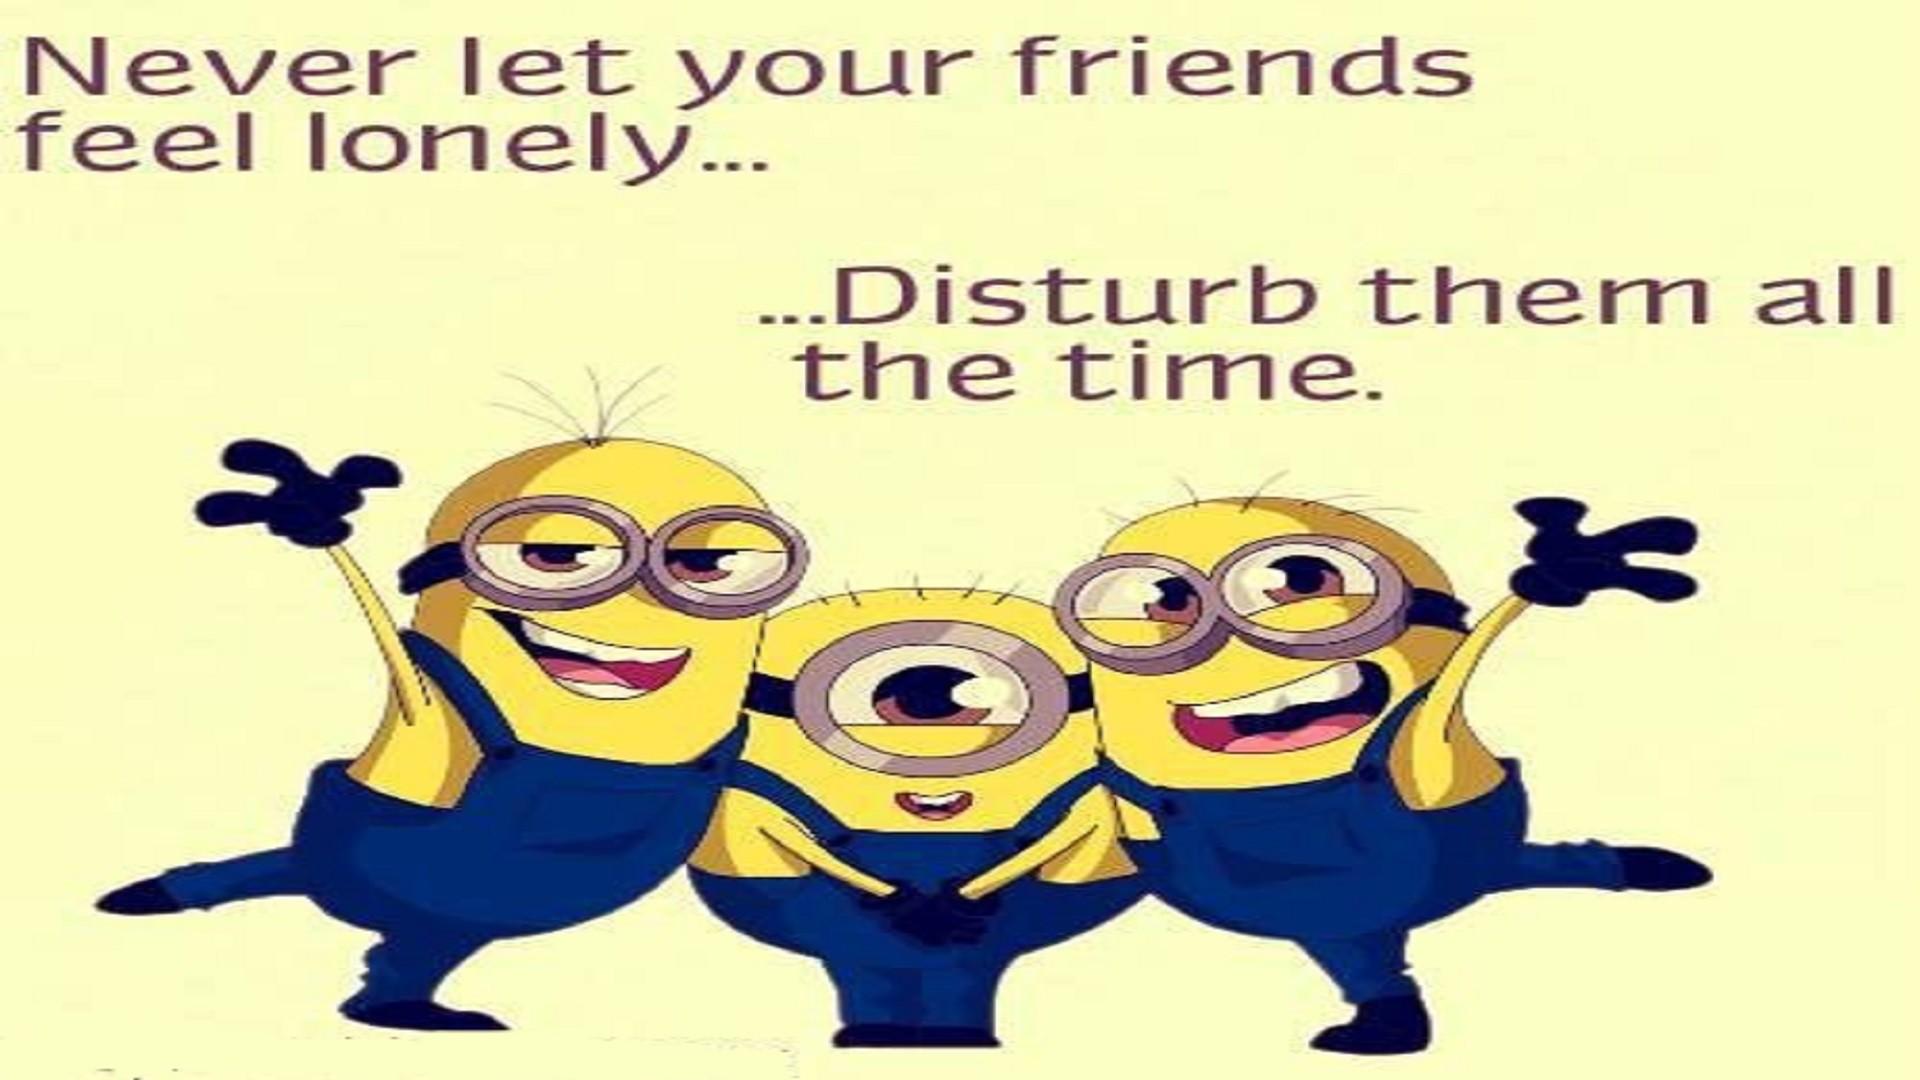 1920x1080 Top-30-Funny-Minions-Friendship-hd-free-wallpapers-